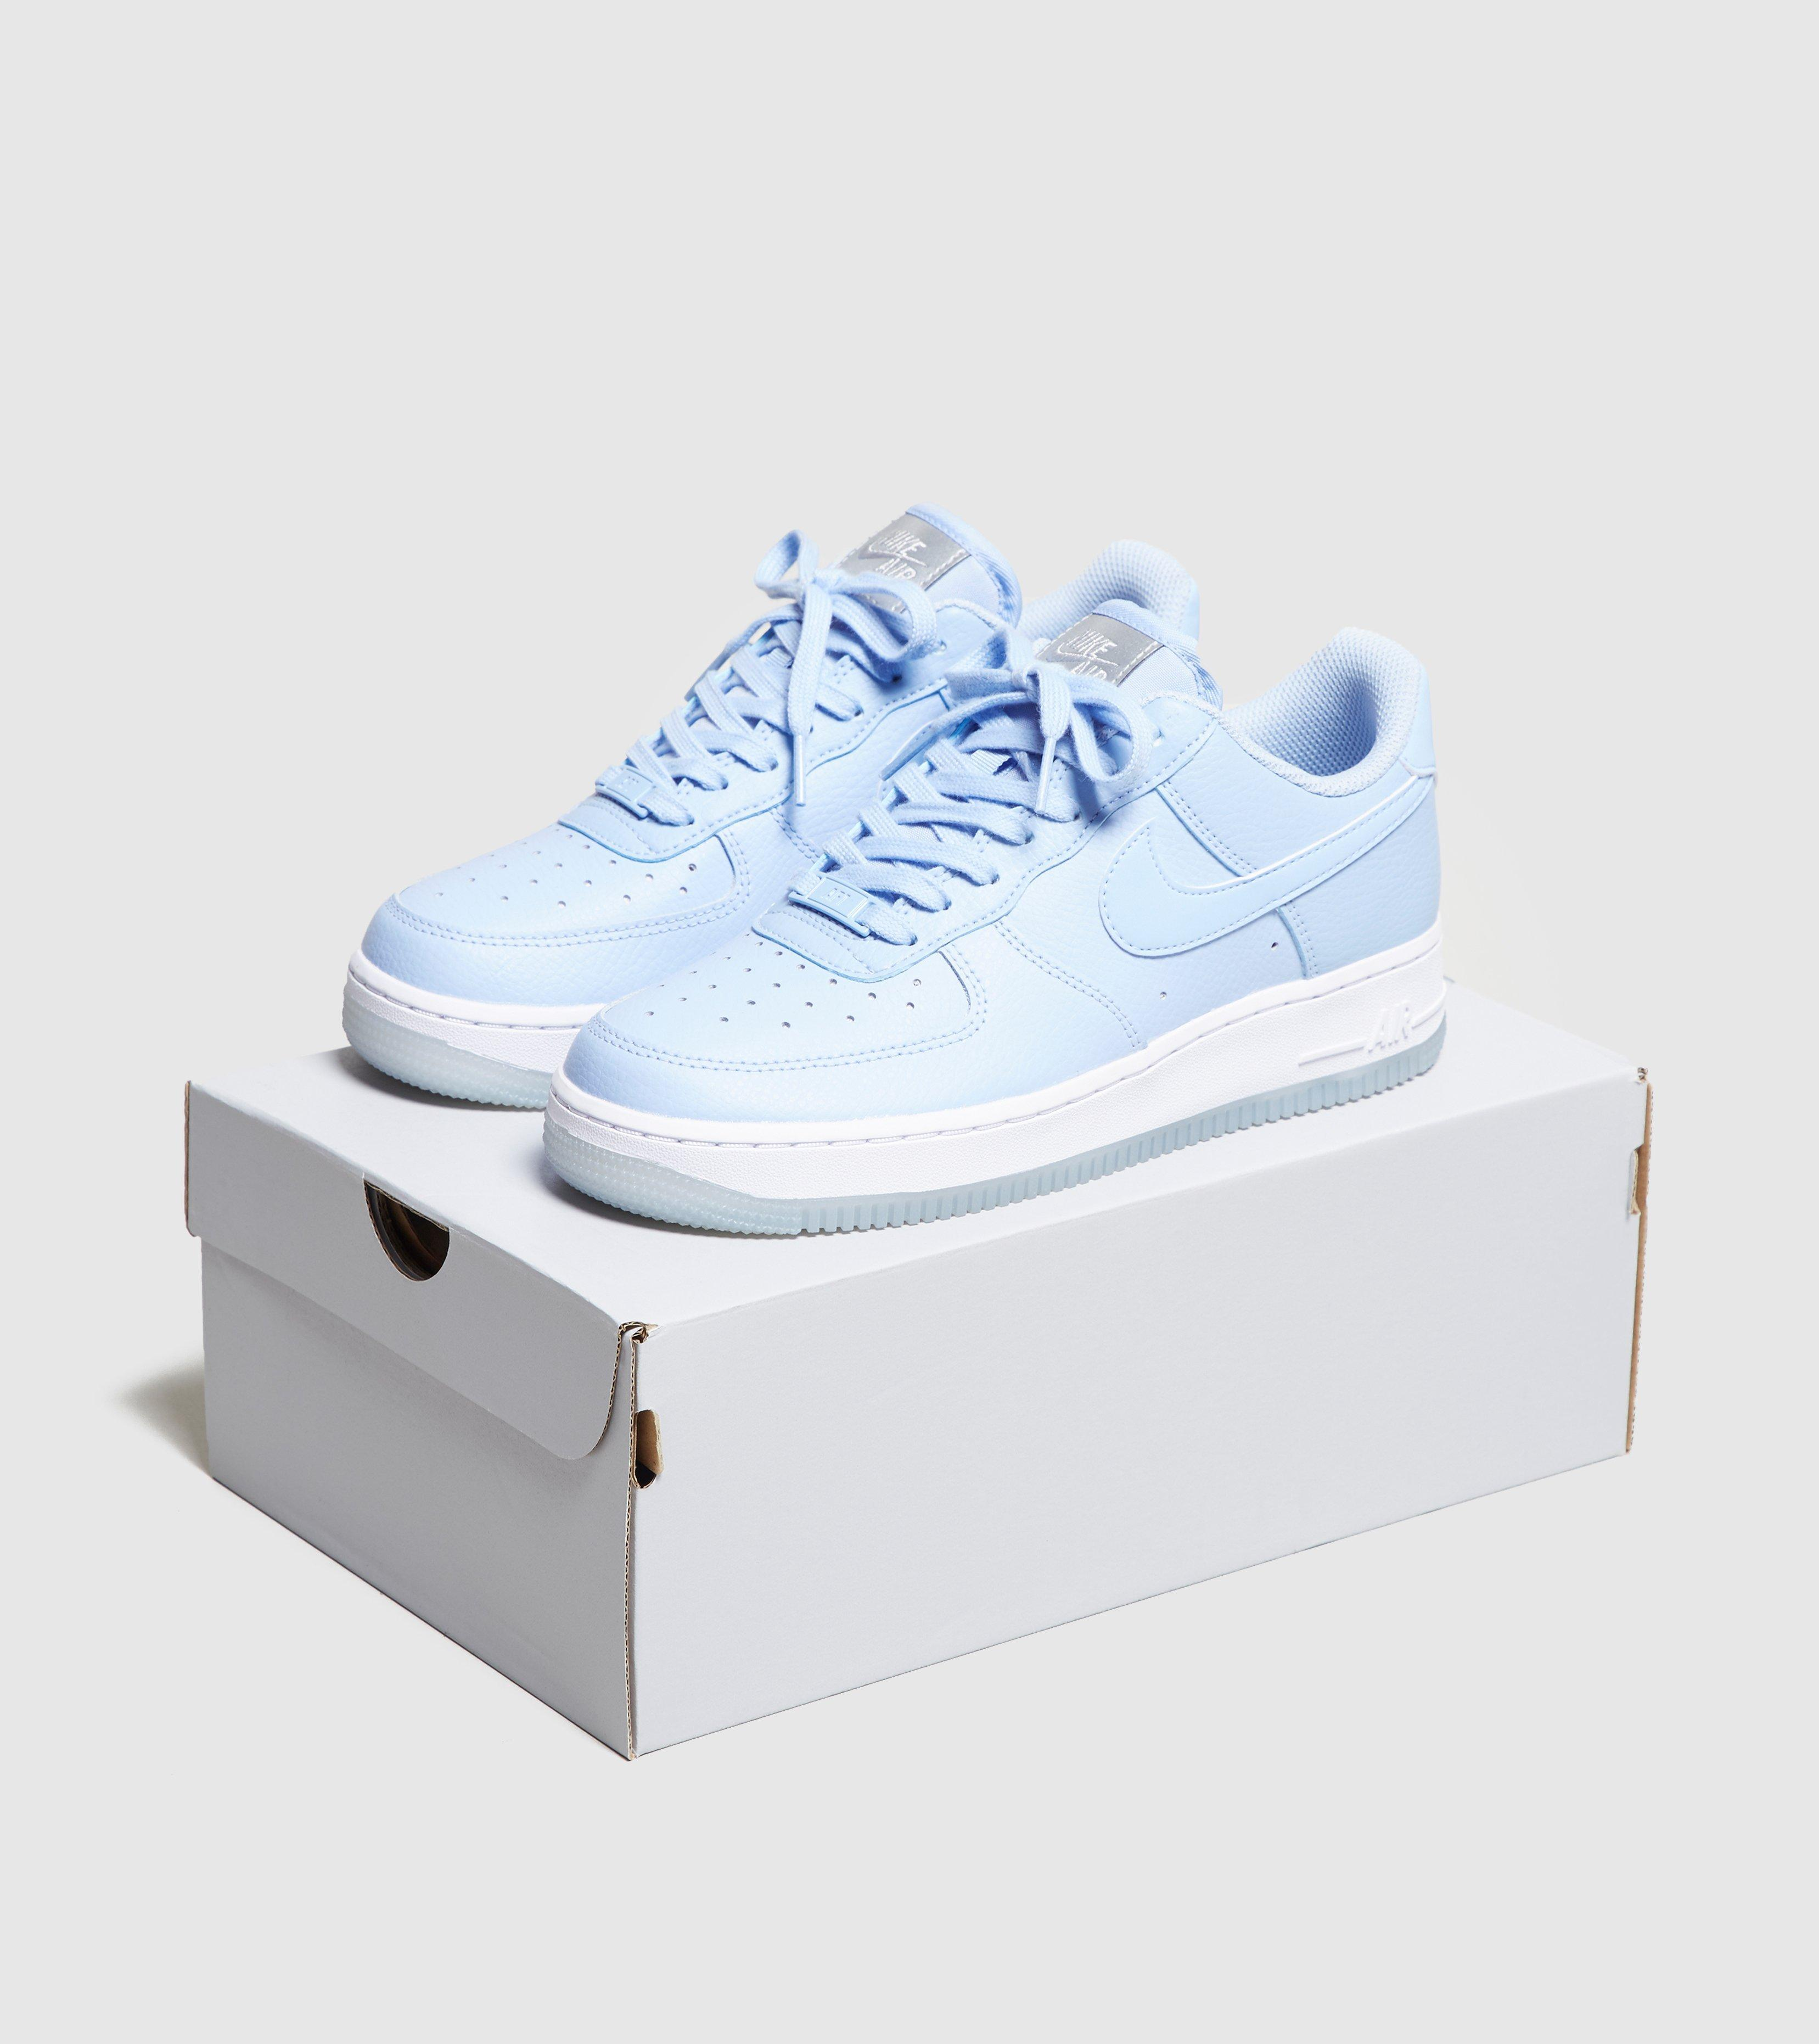 8368be610 Nike Air Force 1 '07 Essential Women's in Blue - Lyst